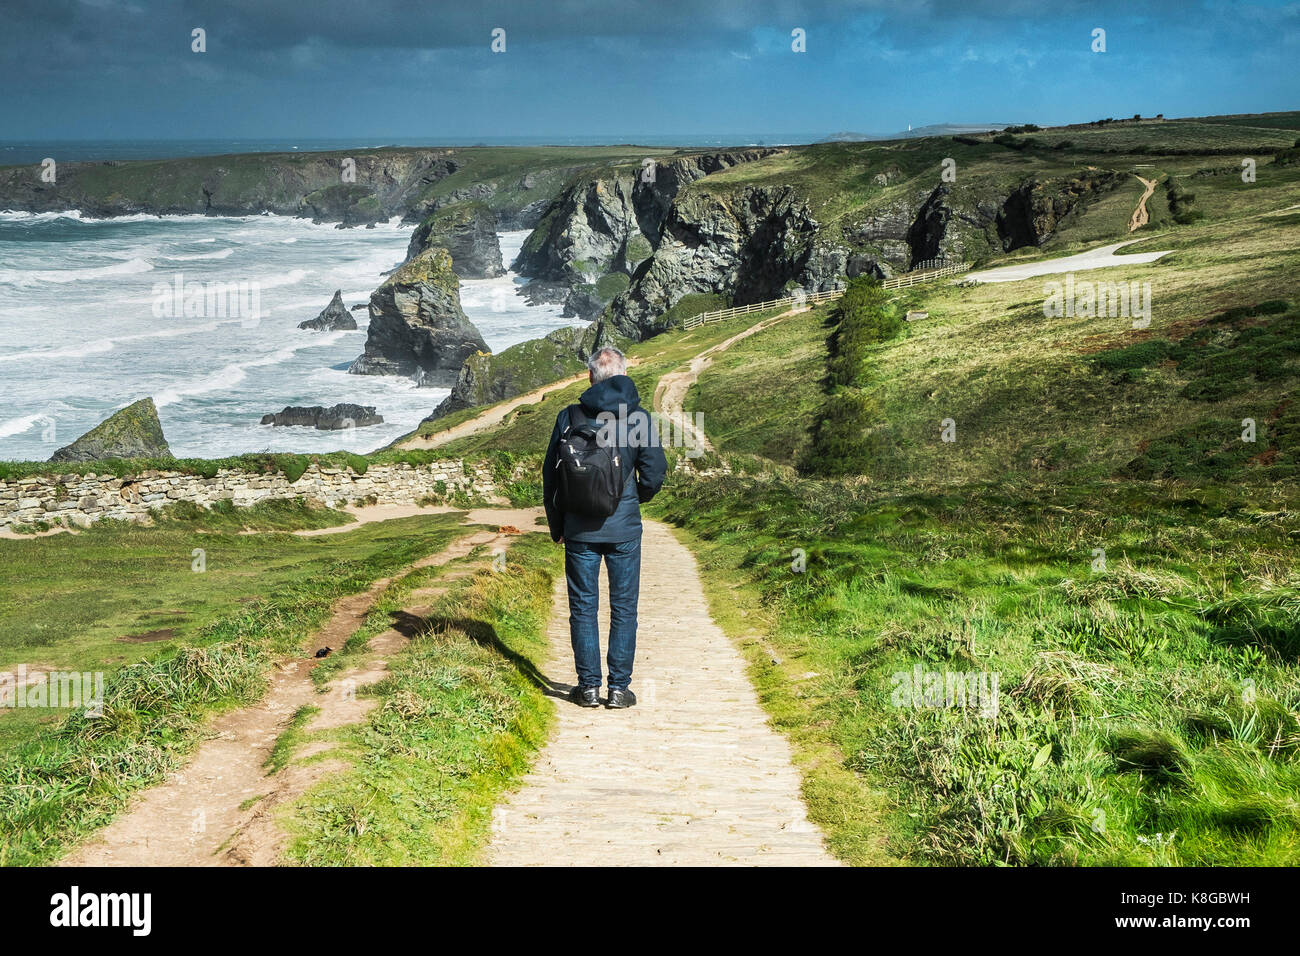 Bedruthan Steps - a tourist enjoying the view over Bedruthan Steps on the North Cornwall coast. - Stock Image